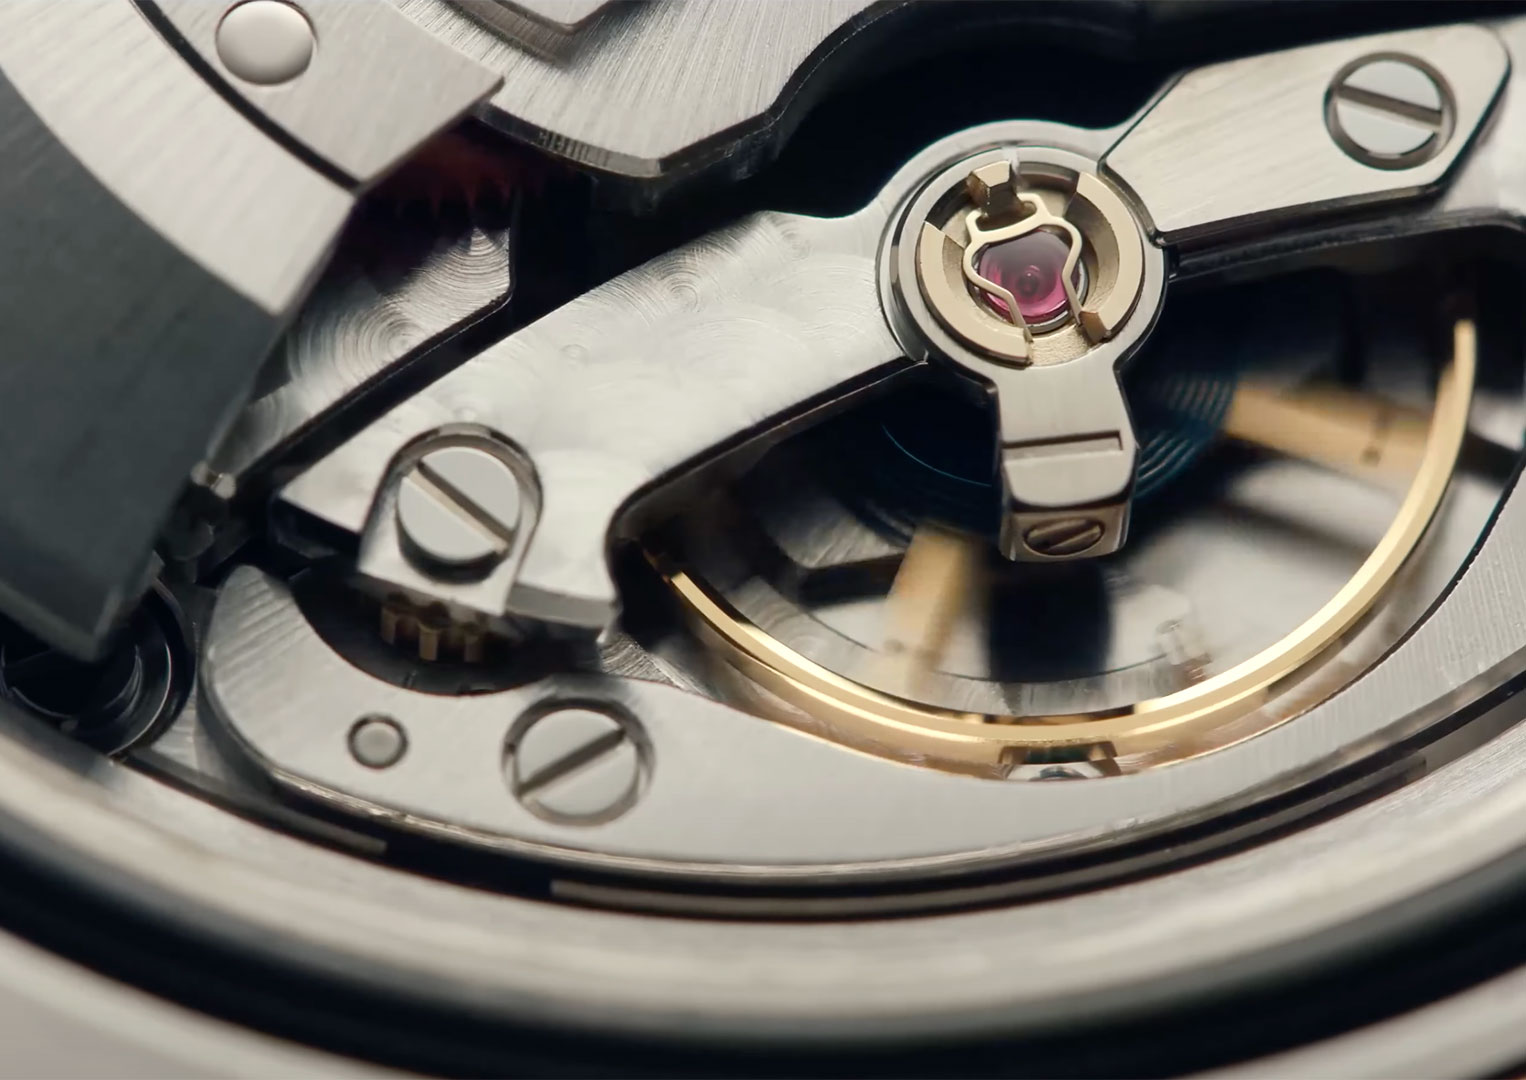 The Rolex Submariner was first introduced in 1953